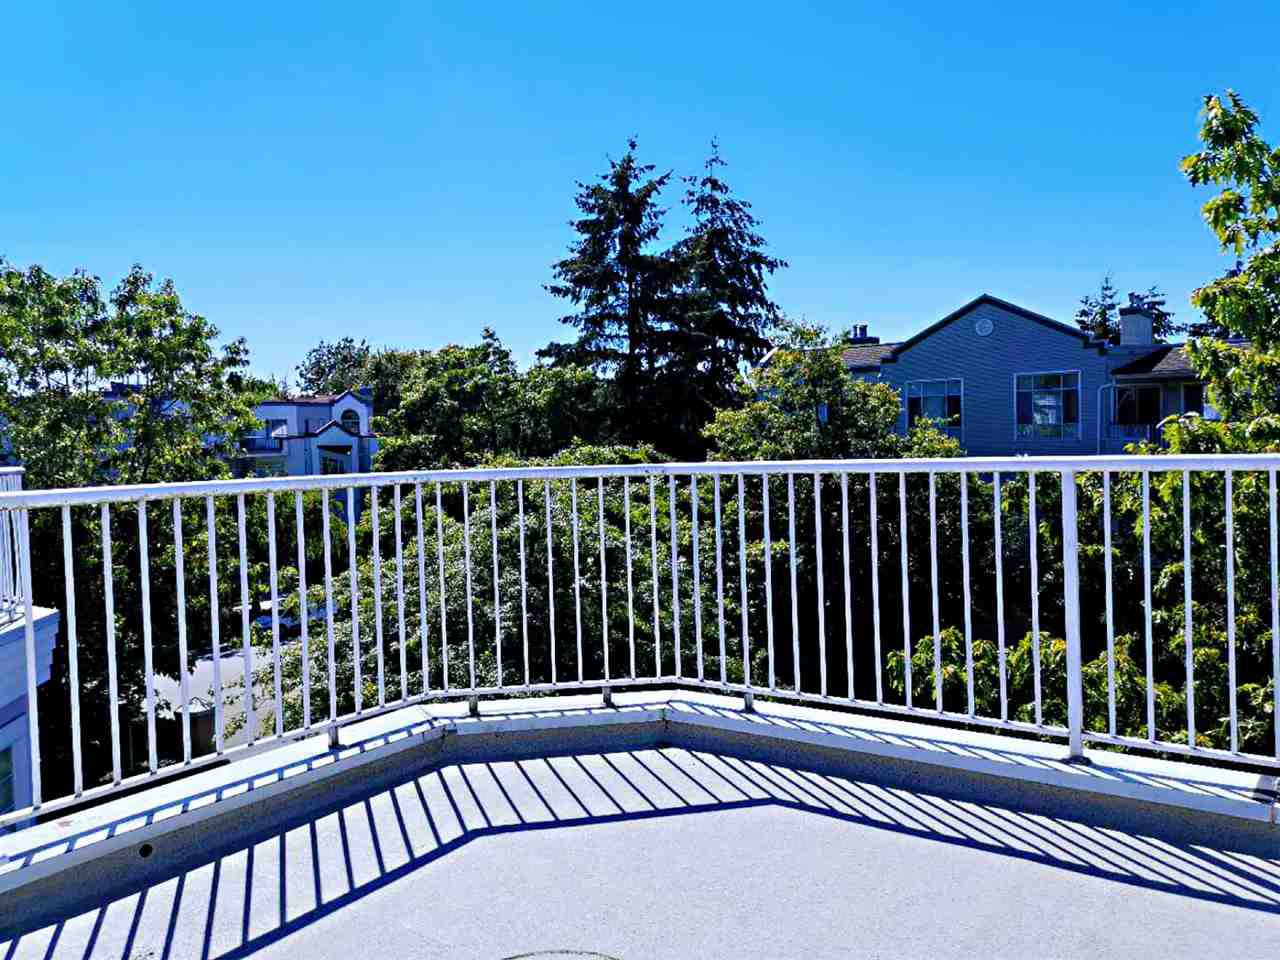 """Main Photo: 19 8711 JONES Road in Richmond: Brighouse South Townhouse for sale in """"CARLTON COURT"""" : MLS®# R2507109"""